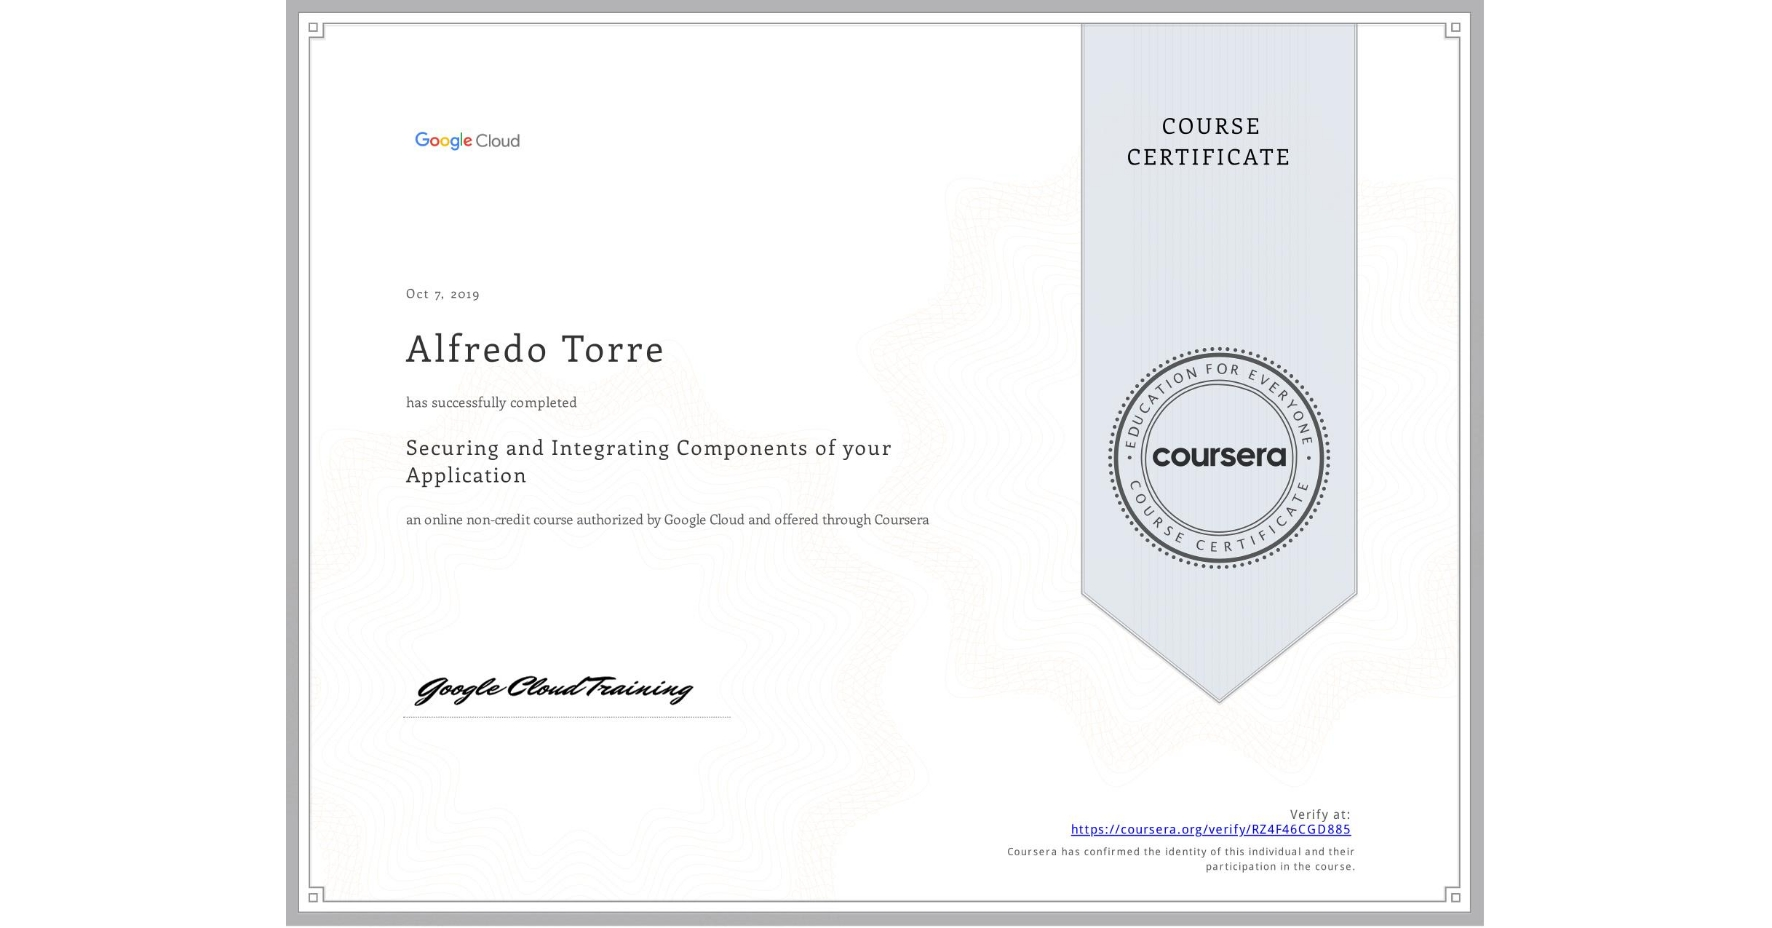 View certificate for Alfredo Torre, Securing and Integrating Components of your Application, an online non-credit course authorized by Google Cloud and offered through Coursera